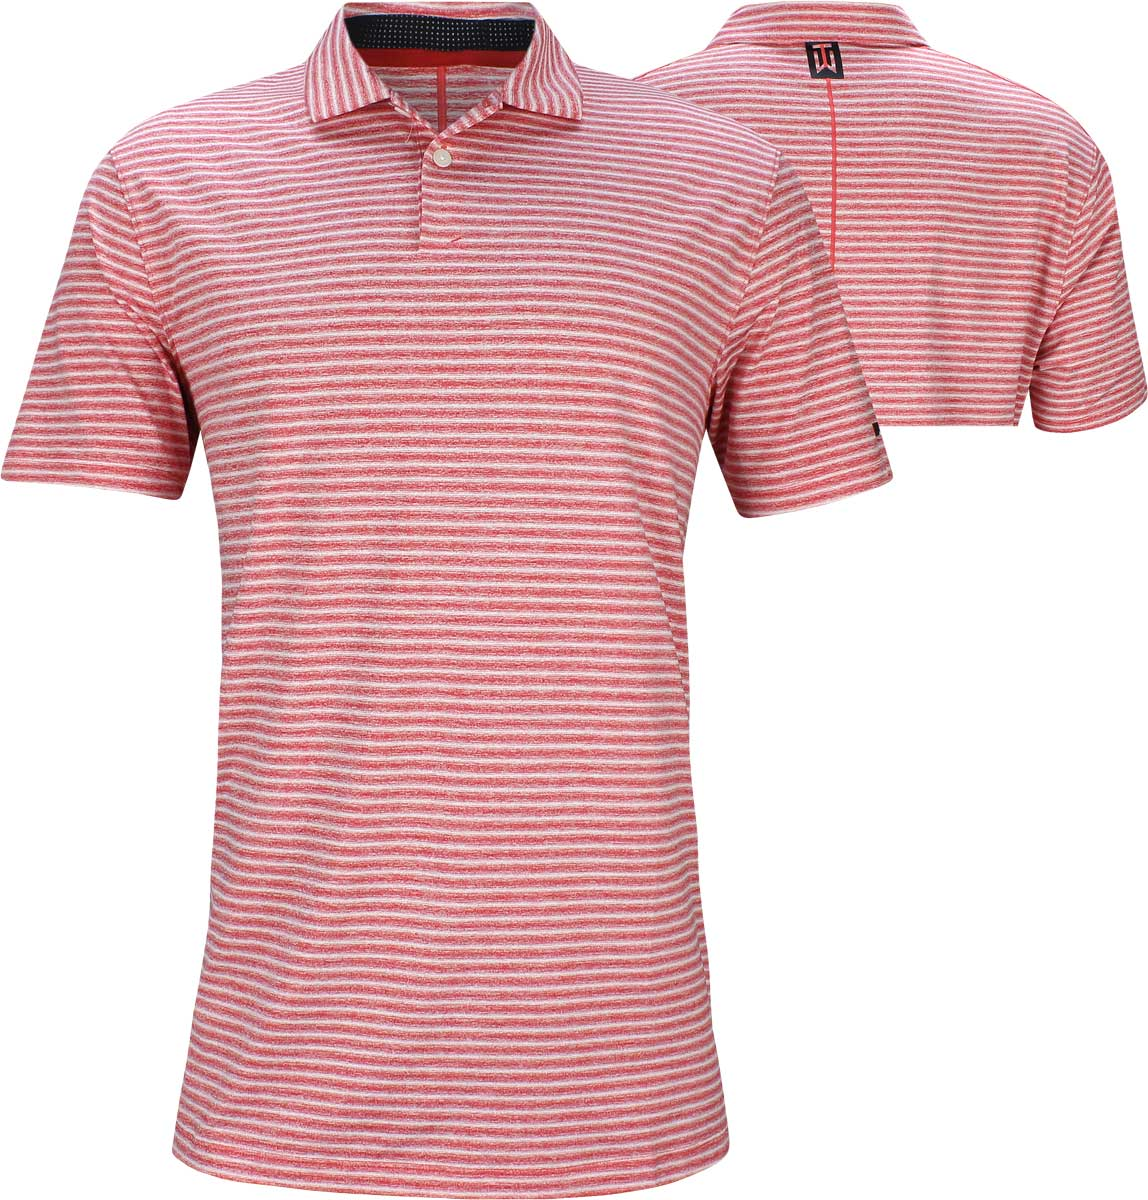 Nike Tiger Woods Vapor Stripe Golf Shirts